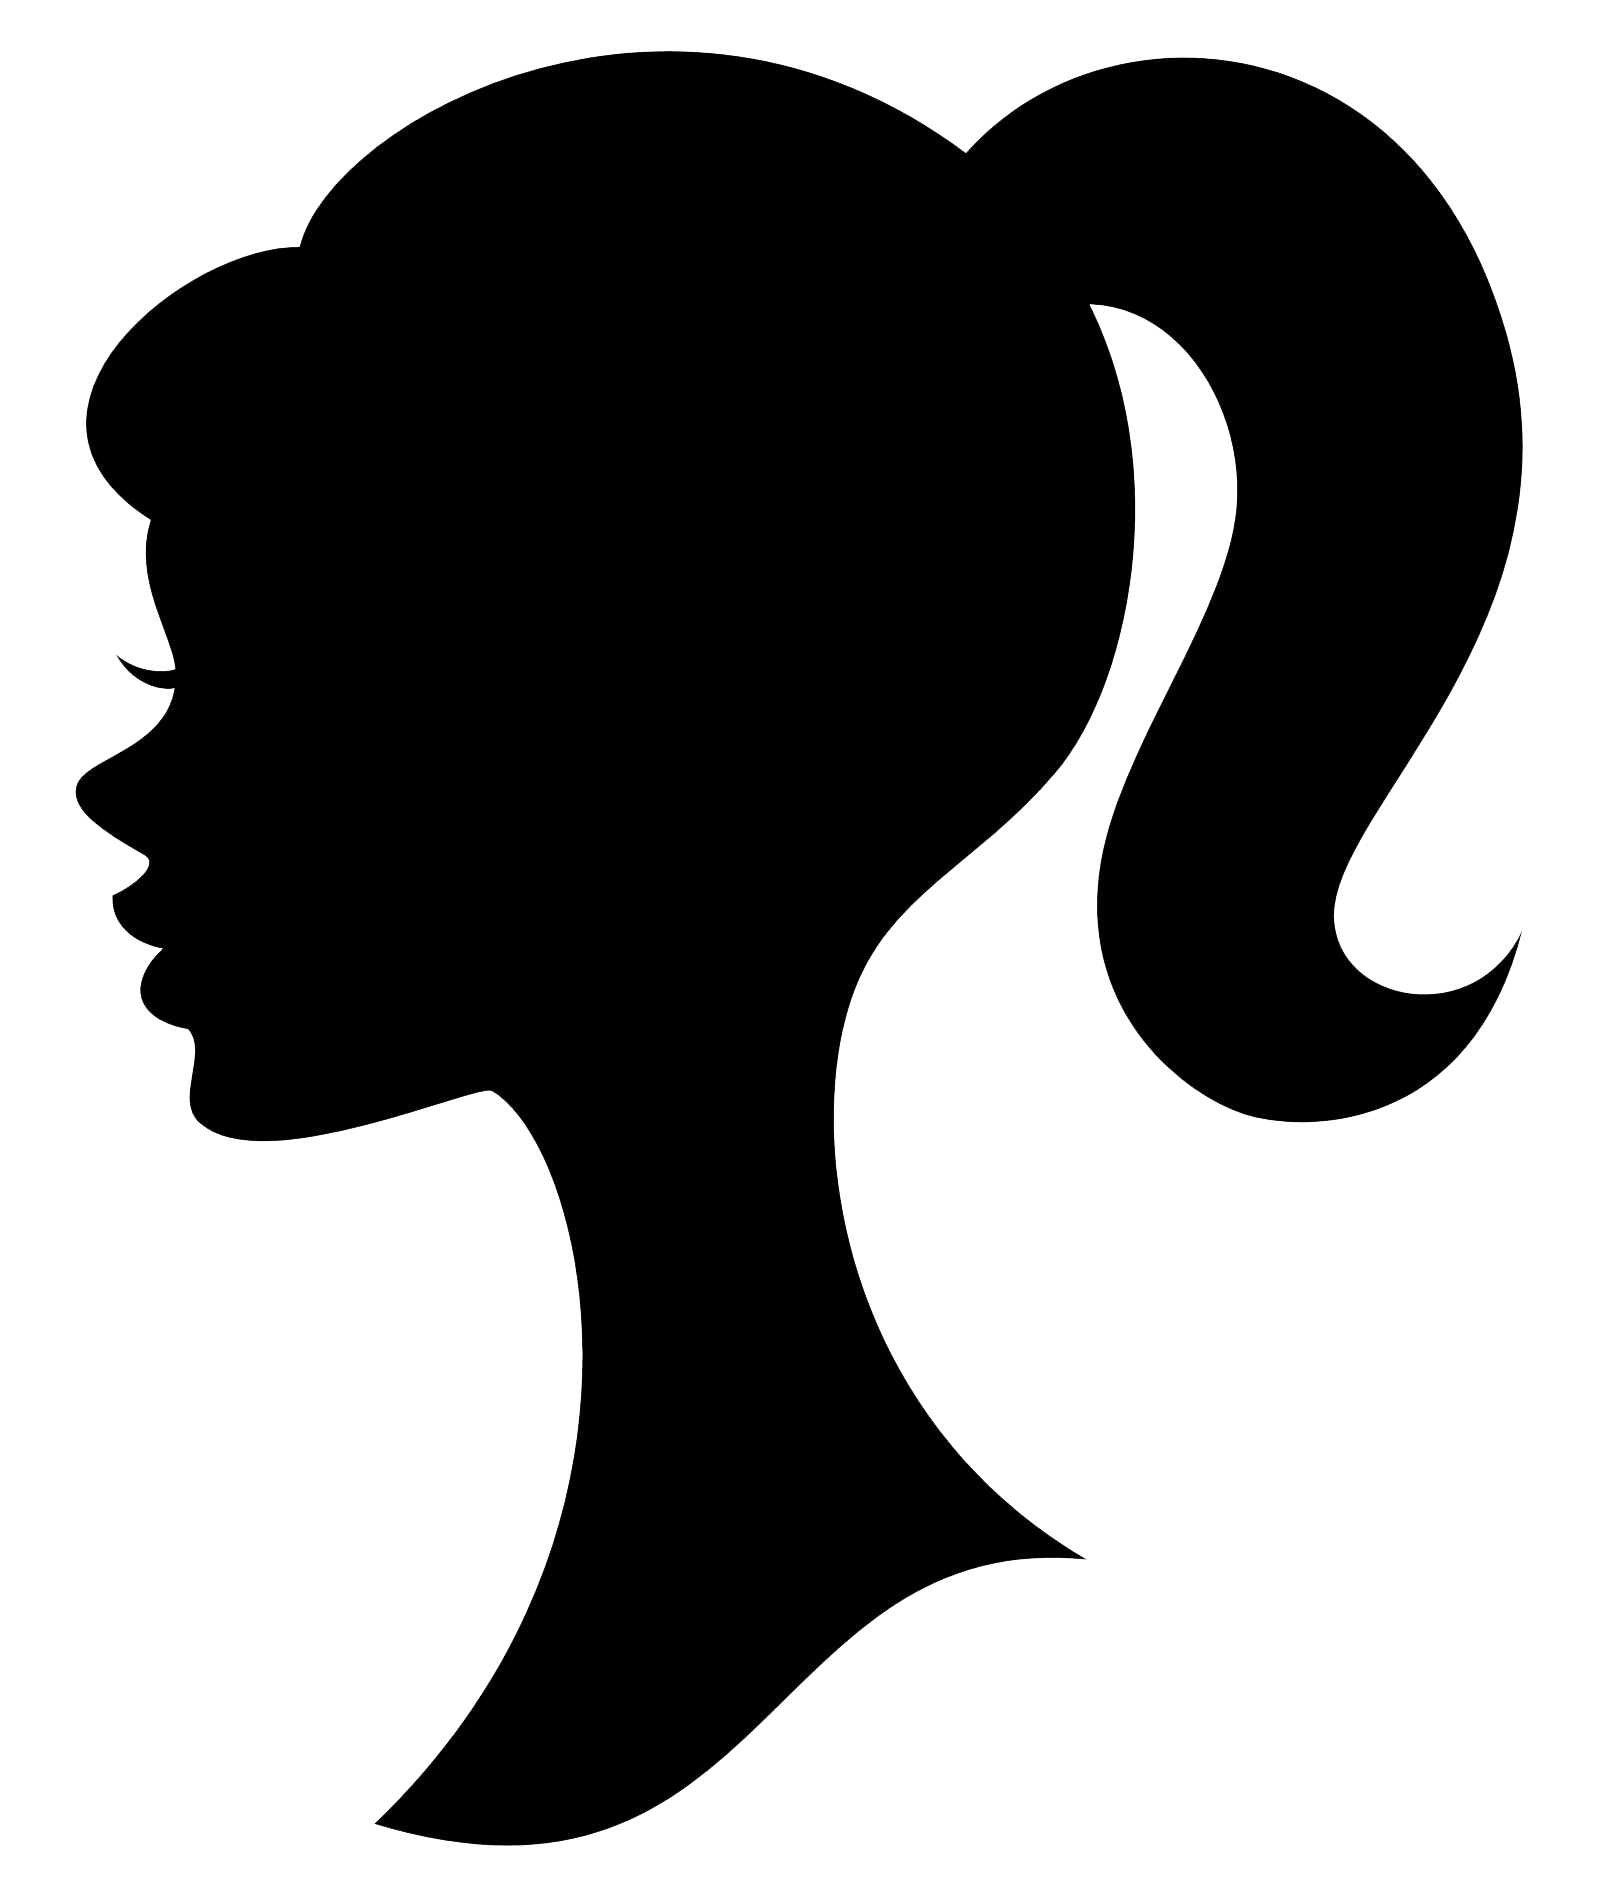 Barbie silhouette png. Image of clipart cartoon